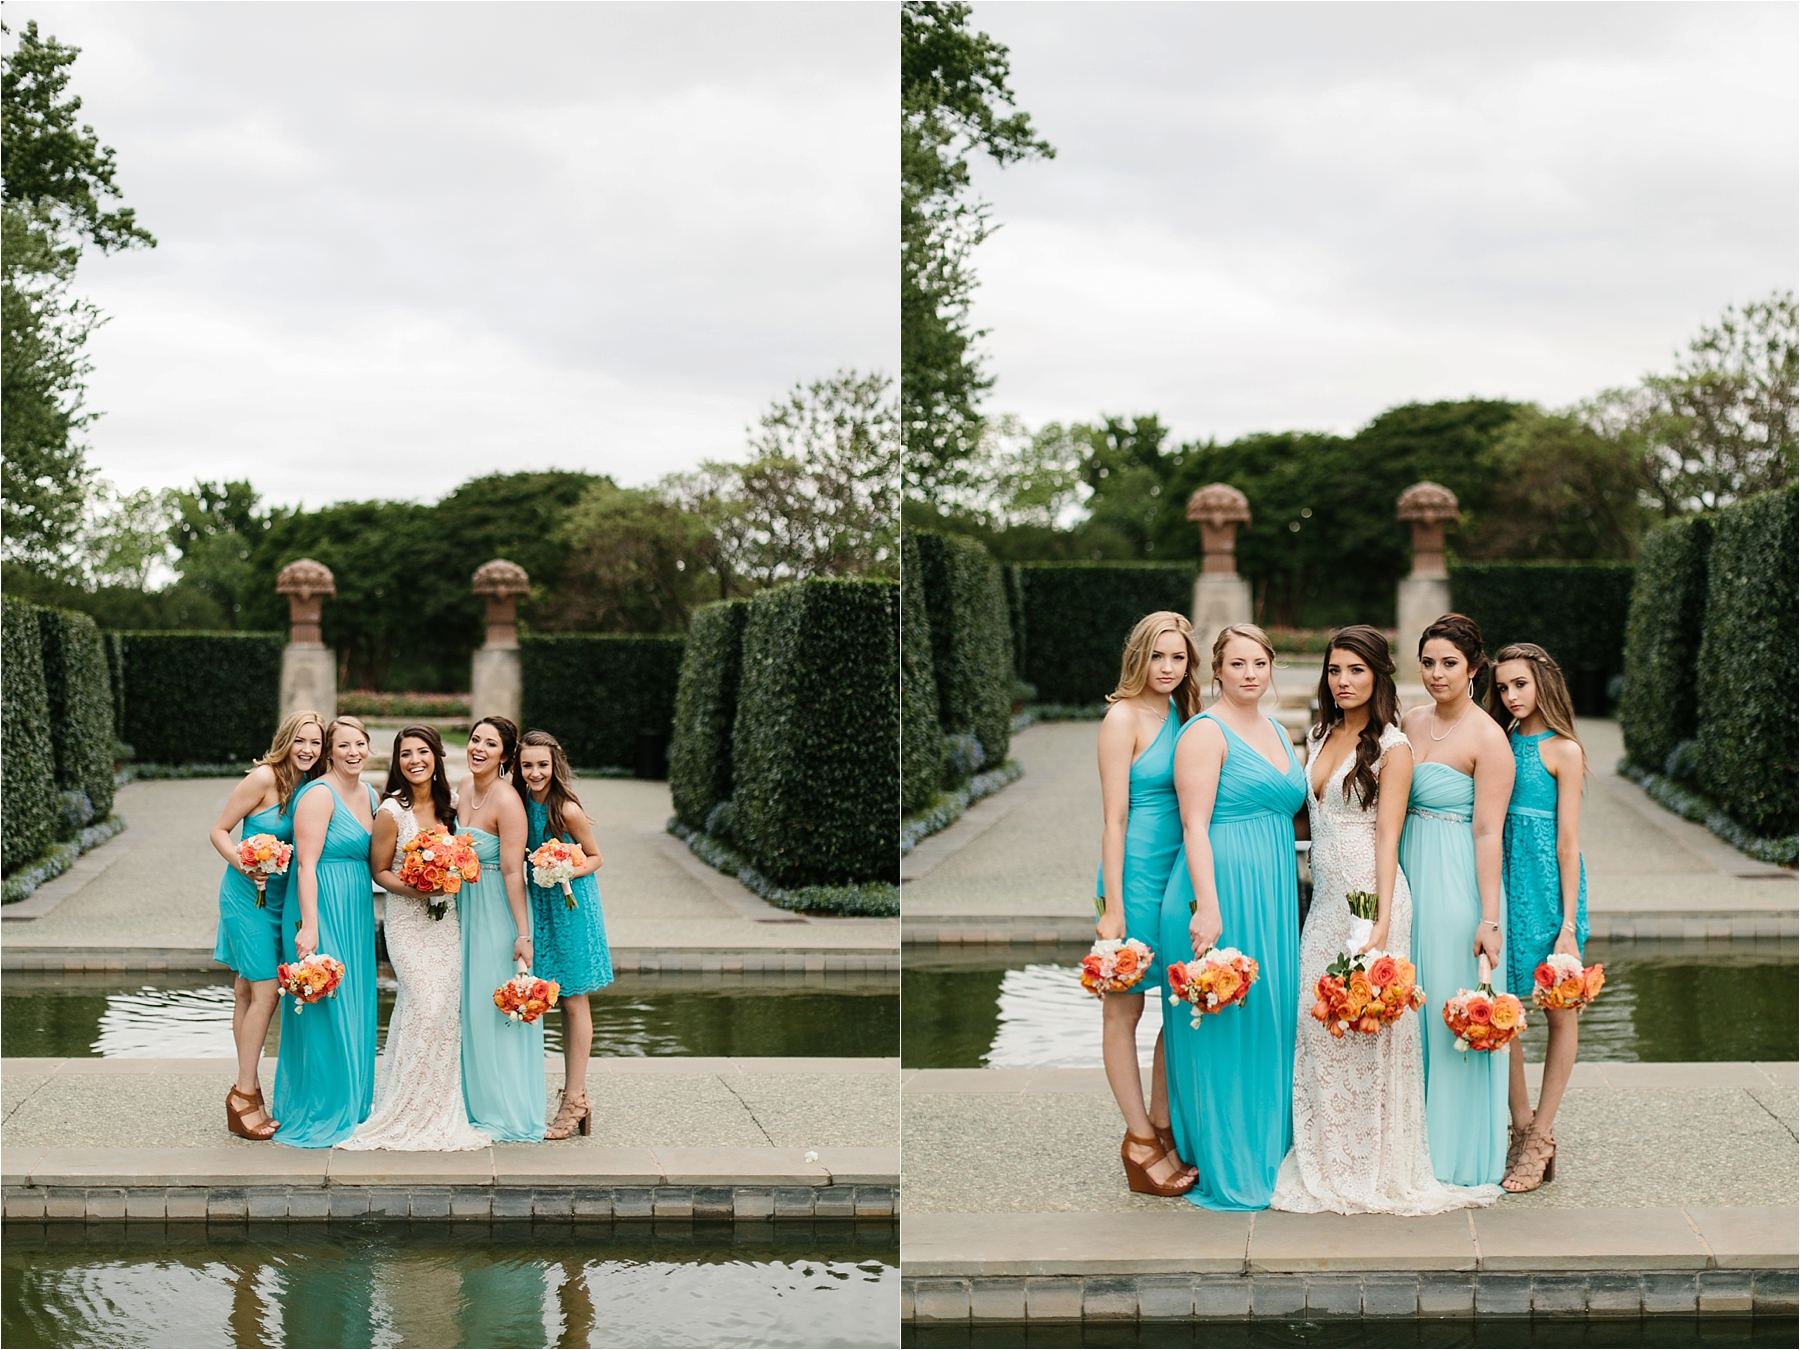 Devyn + Caden __ a Dallas Arboretum Garden Style Wedding by North Texas Wedding Photographer Rachel Meagan Photography __ 067